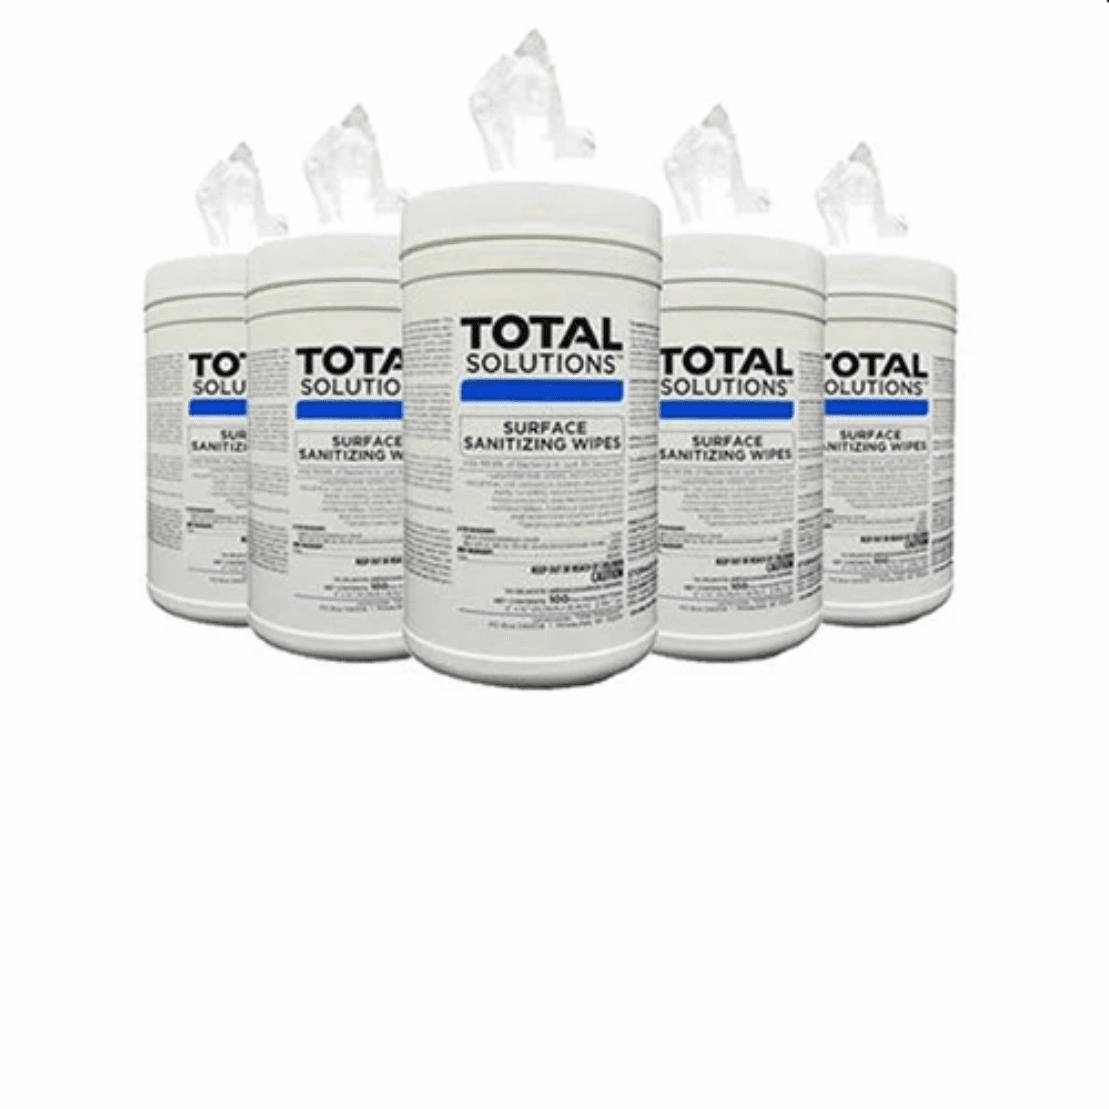 """Total Solutions Surface Sanitizing Wipes - 1 Case (6 Canisters, 6"""" x 10"""", 100 count)** CURRENTLY NOT AVAILABLE"""